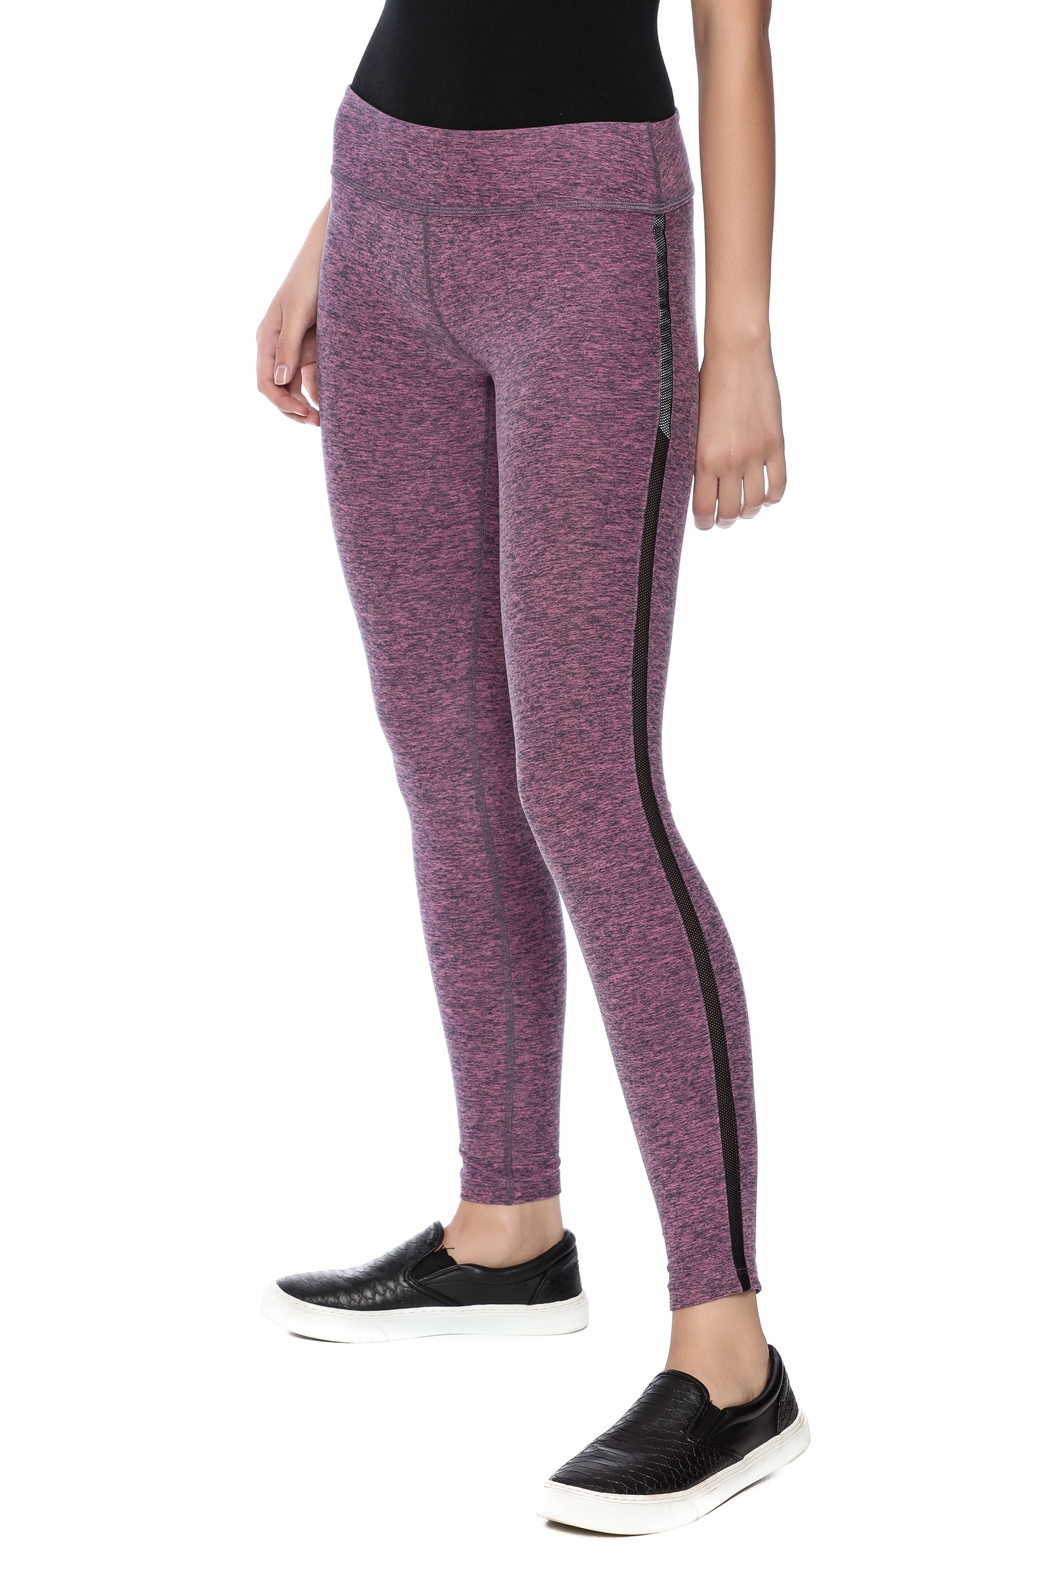 Beyond Yoga Lattice Side Long Legging From Iowa By Namaste